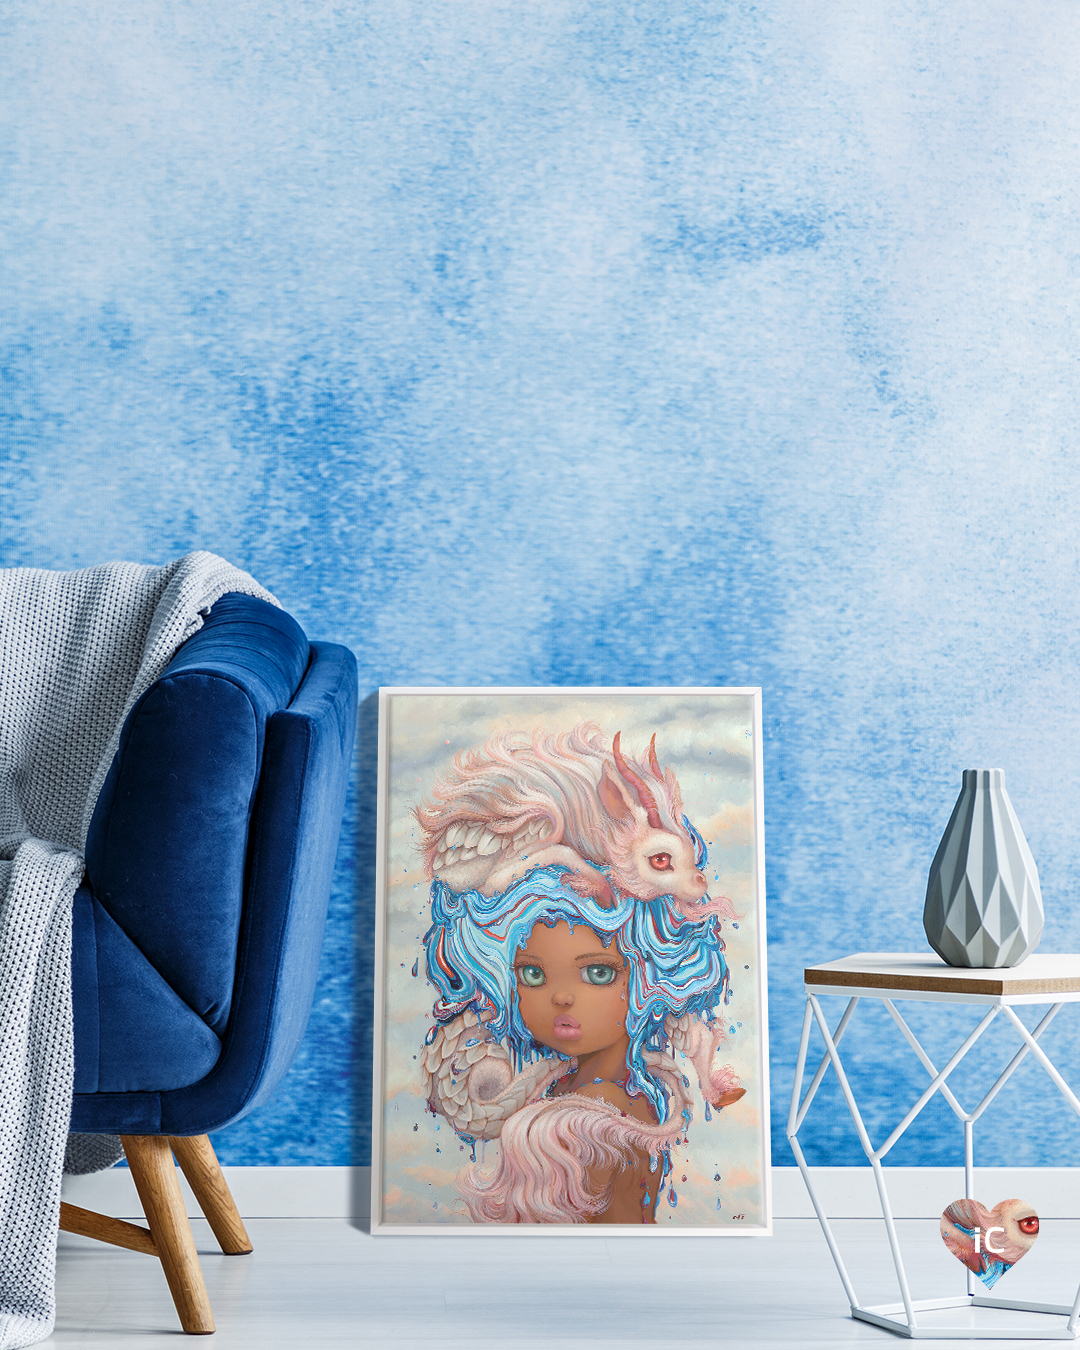 Pop surrealist portrait of girl with dripping blue hair and a pink creature on her head framed in white leaning on floor of a living room with a blue textured wall and a dark blue velvet sofa